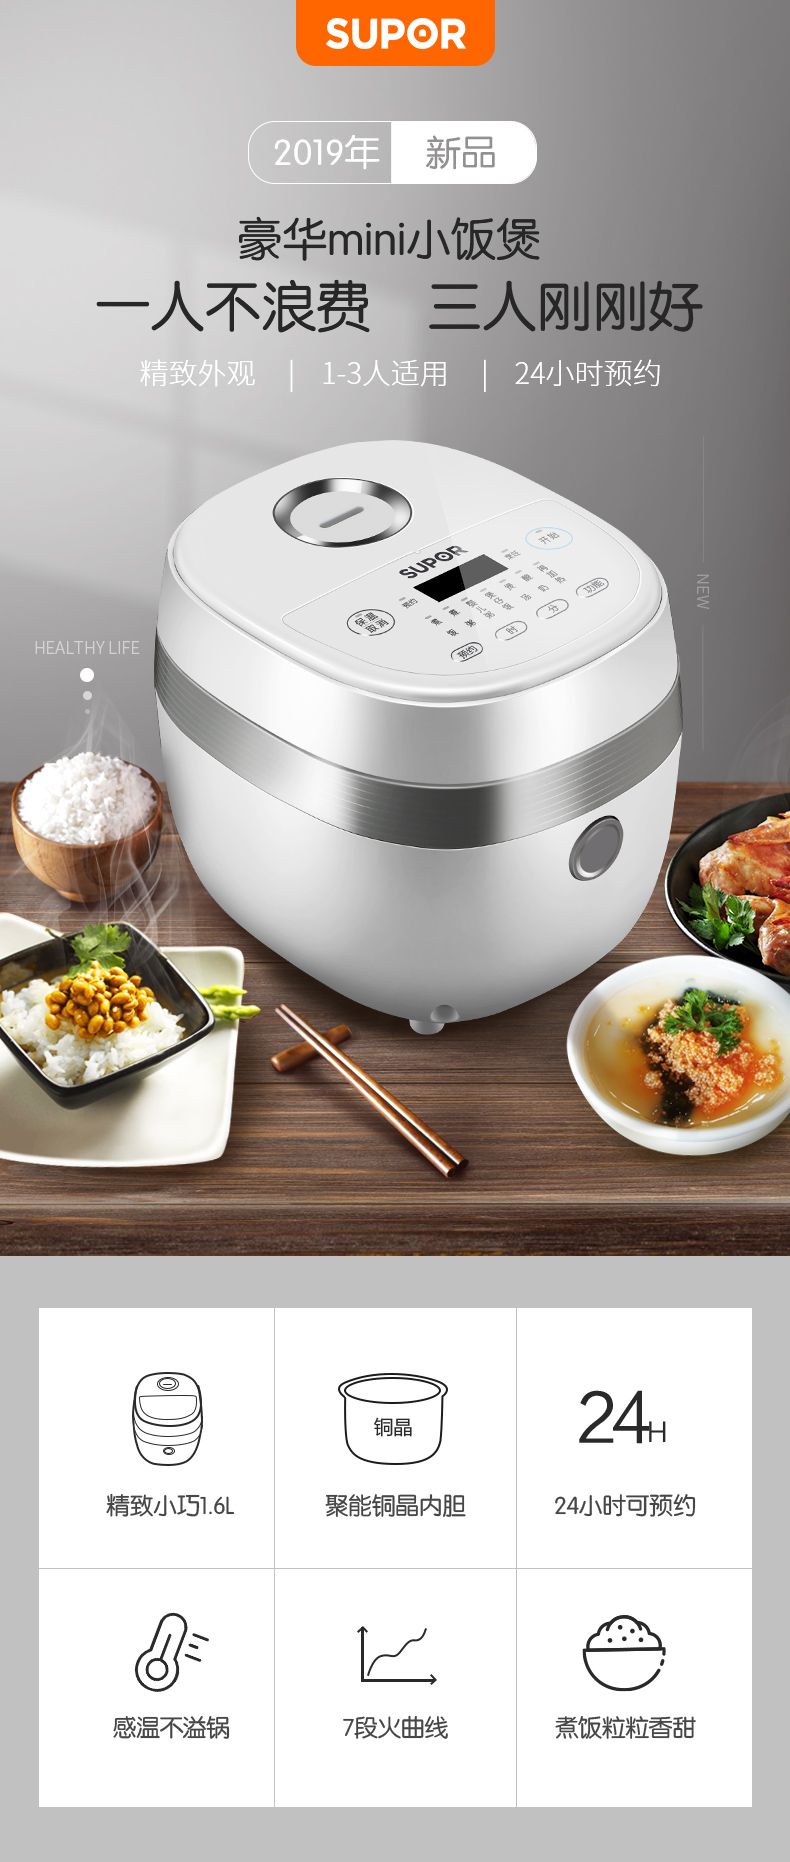 Rice Cooker Home Smart Mini Rice Cooker Single Small Dormitory 1-2 People 1